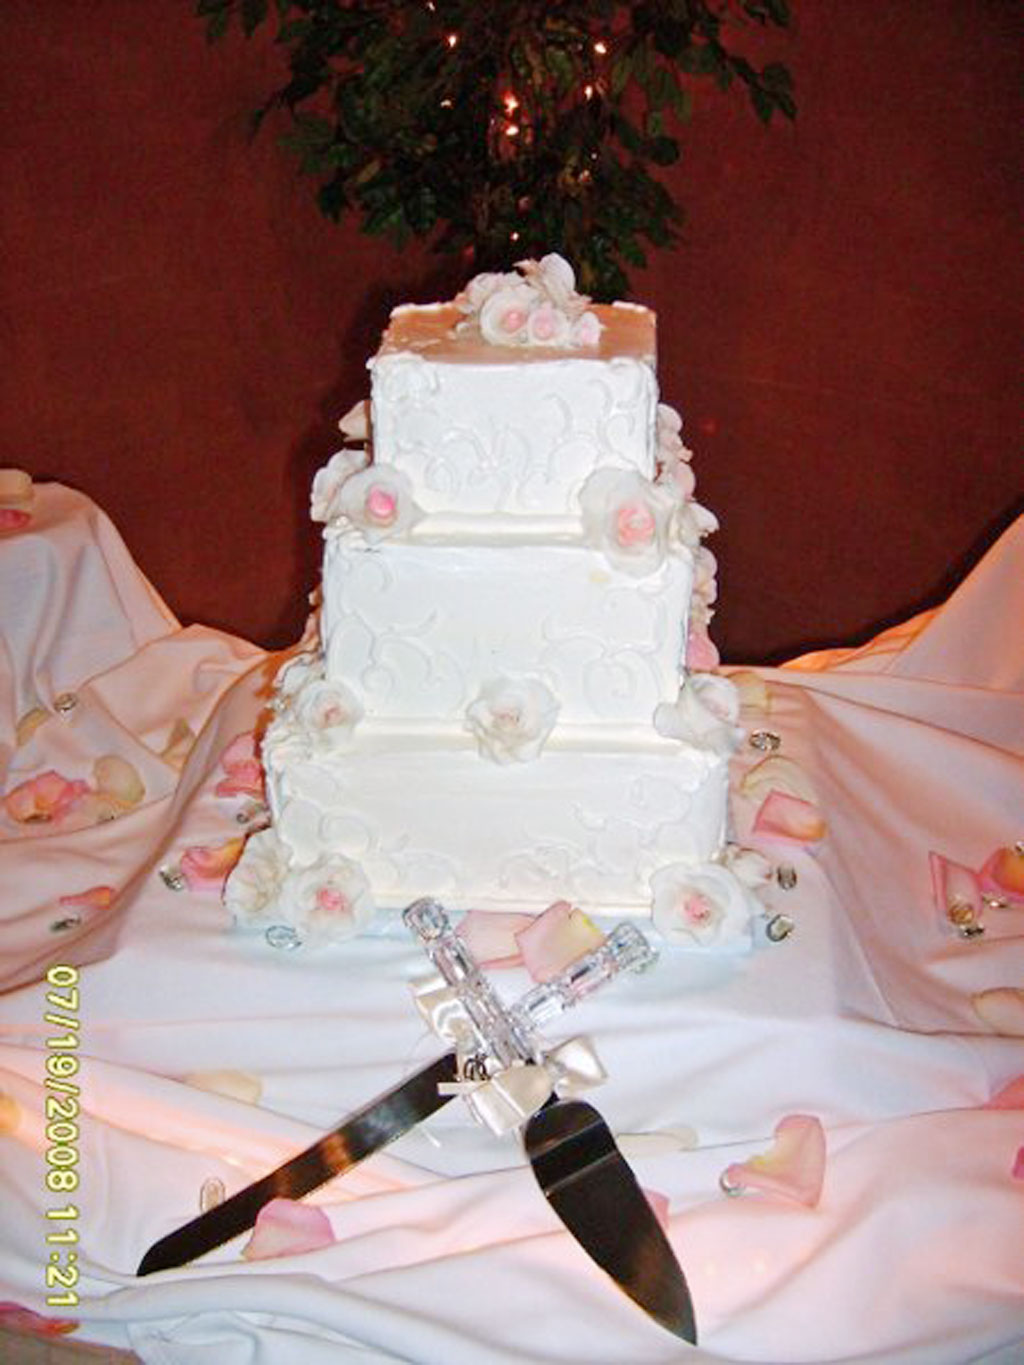 colorado springs wedding cakes colorado springs wedding cakes decor wedding cake cake 12901